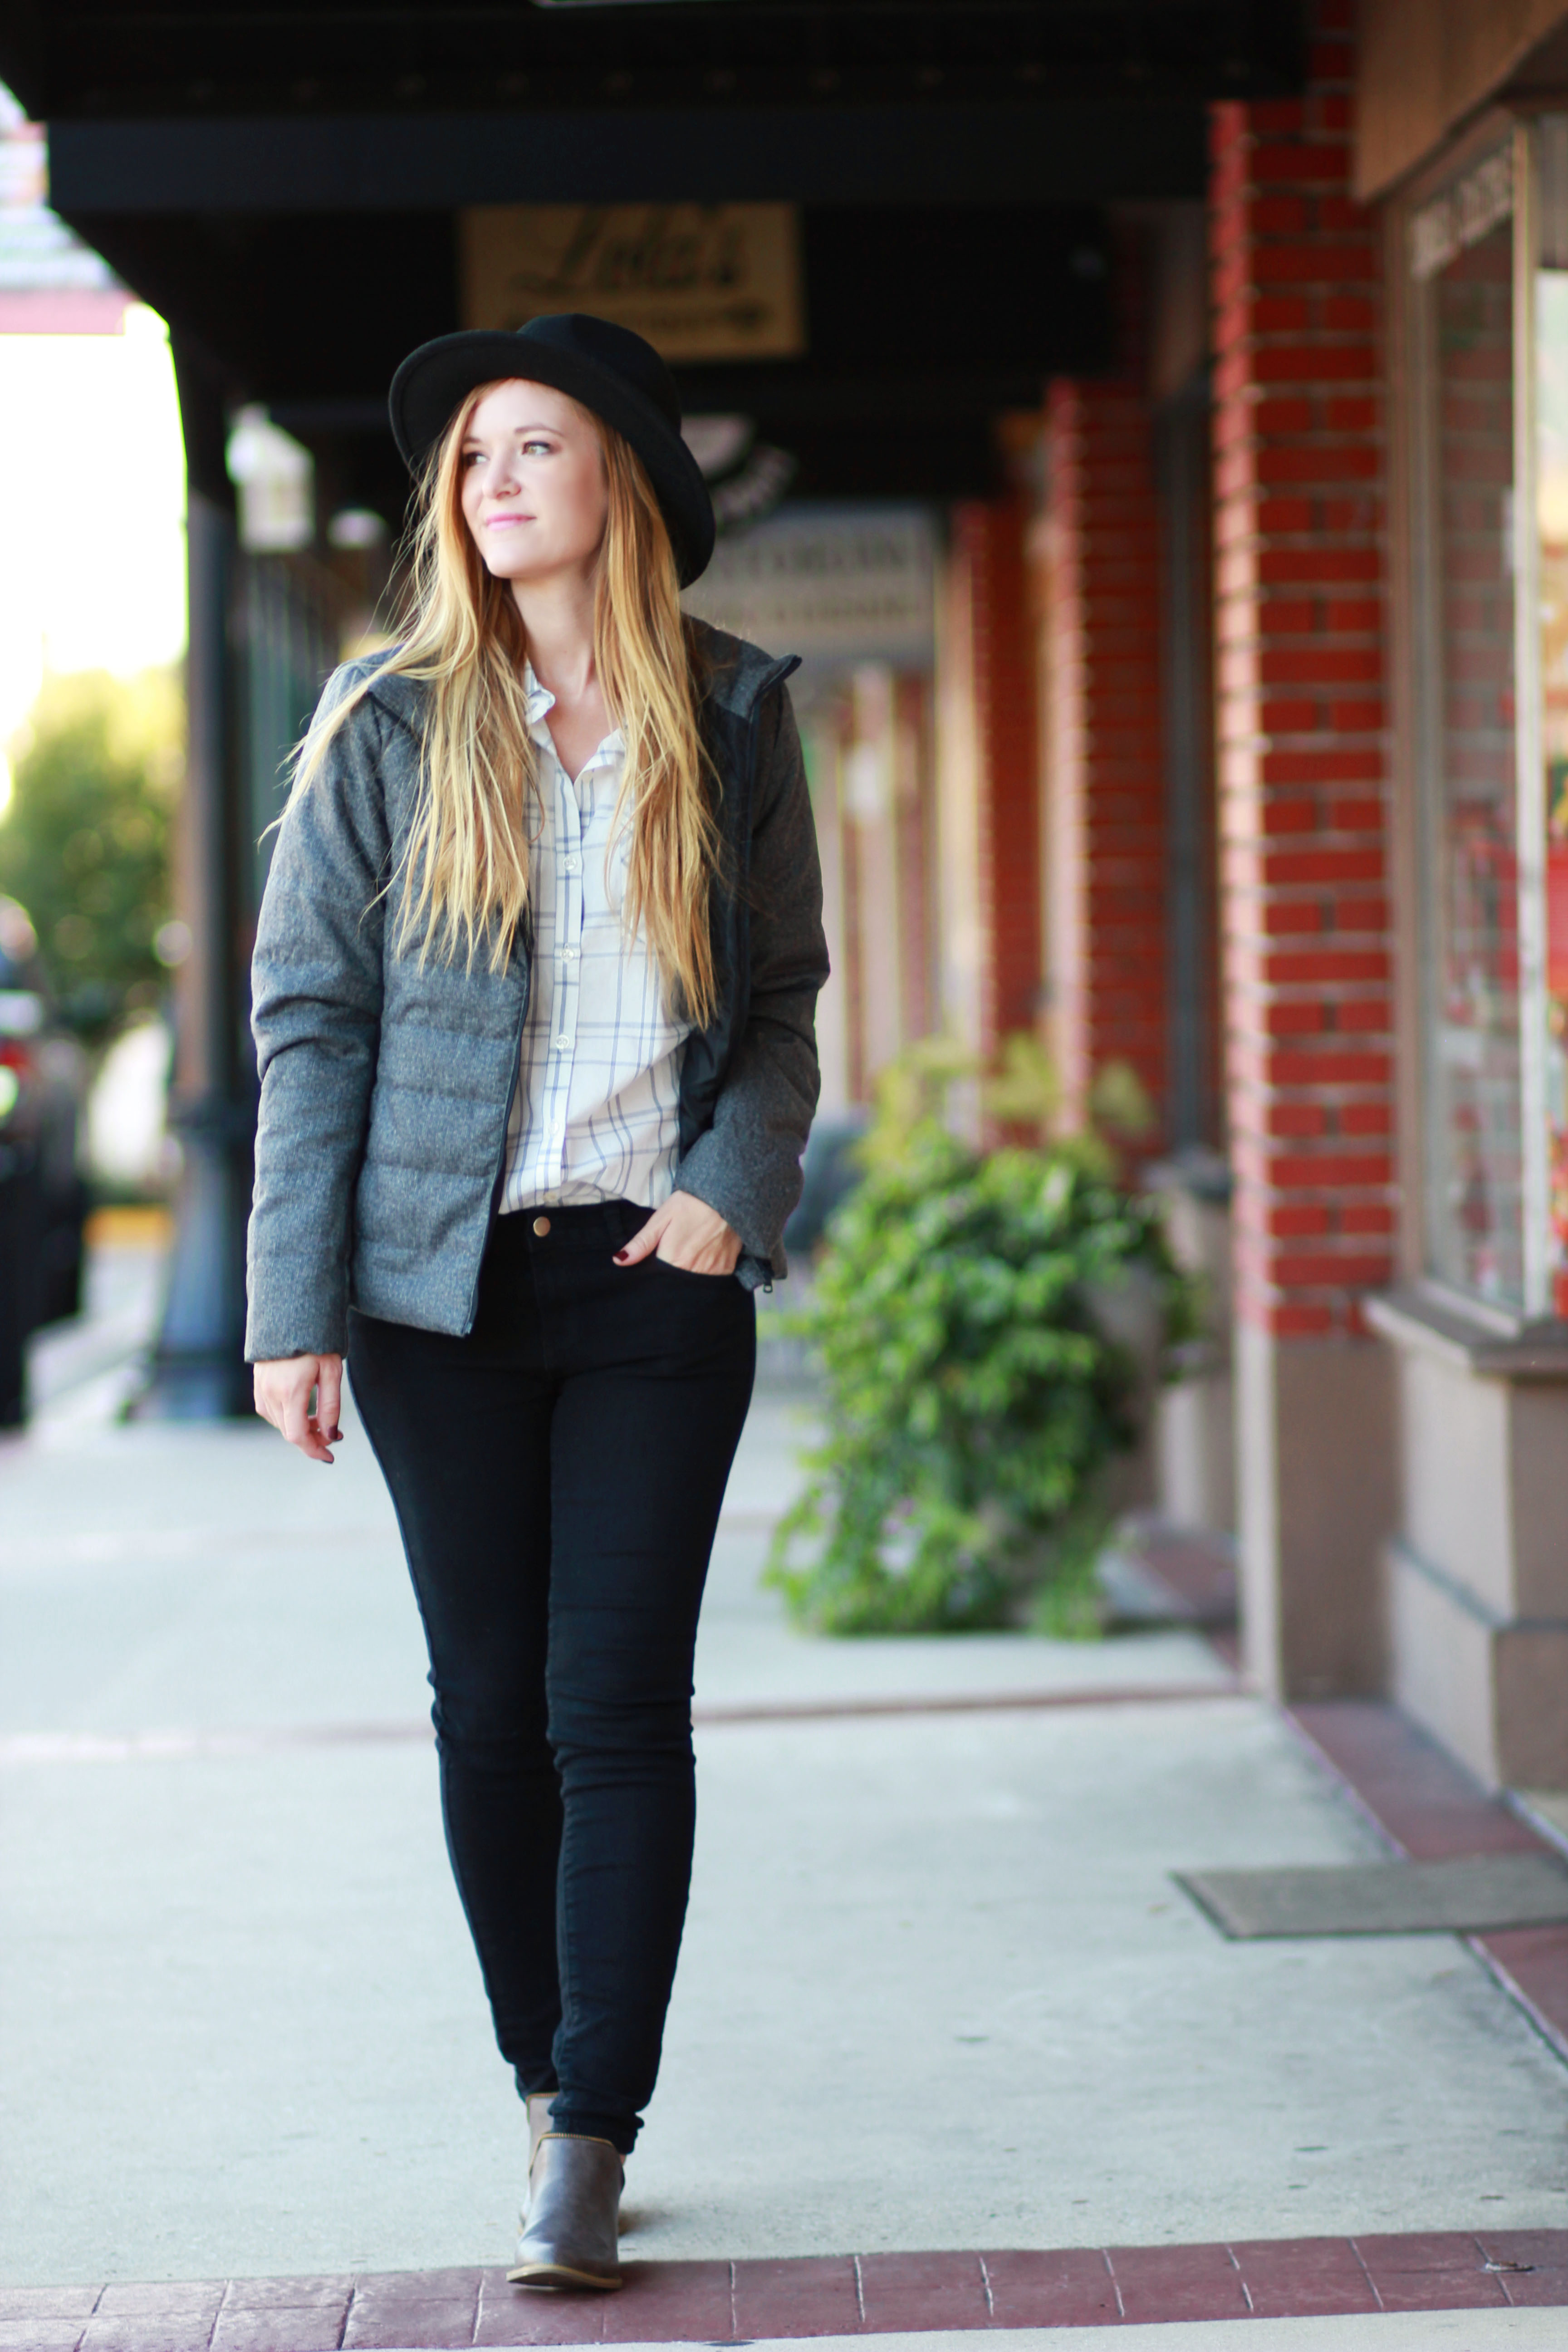 florida fashion blogger styles ps i adore you puffer jacket with forever 21 shirt, black pants and ankle booties for a casual fall outfit